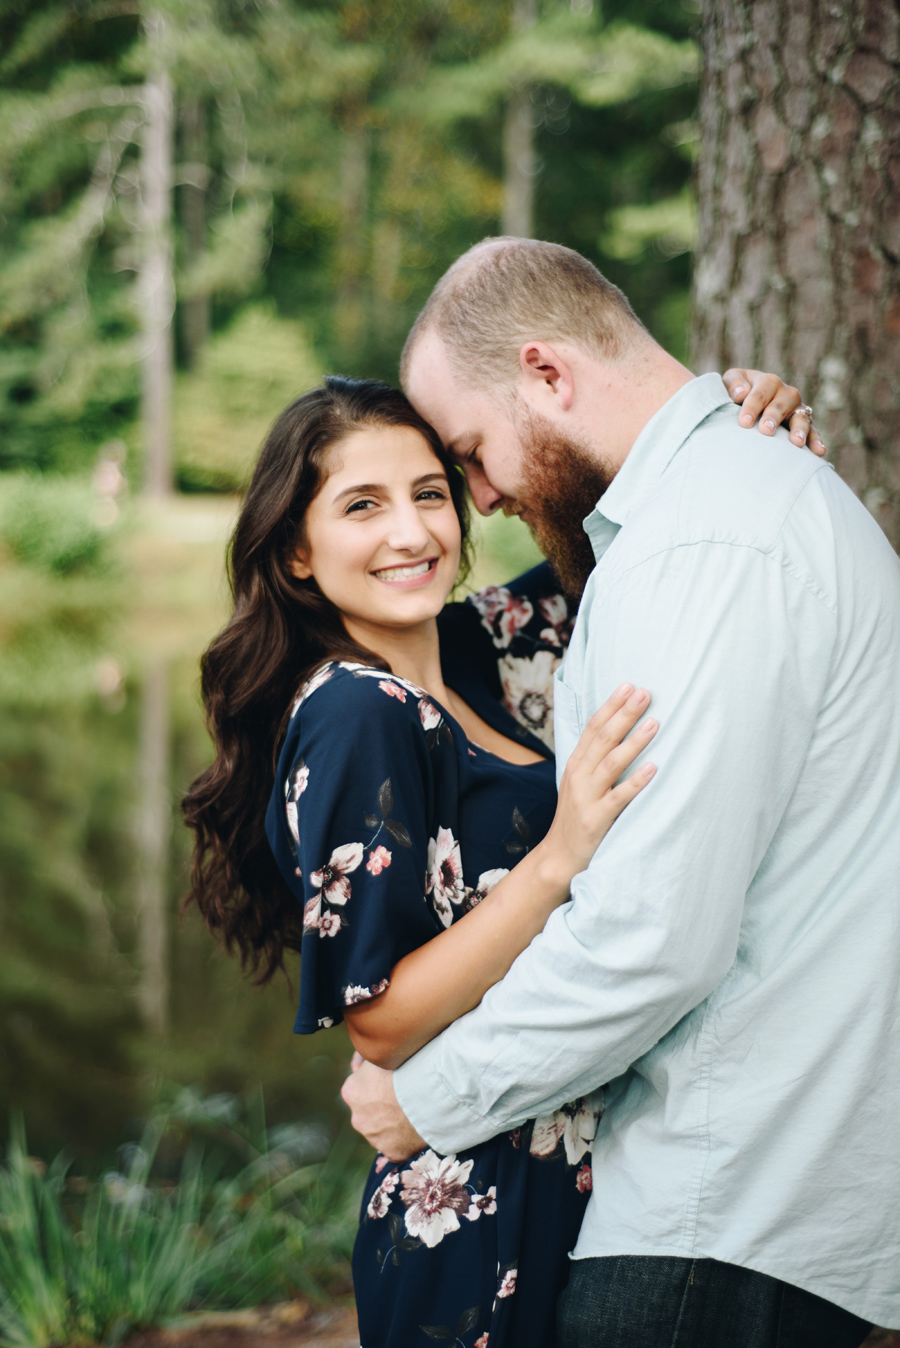 KrisandraEvans.com | Atlanta Engagement Photographer | Vines Botanical Garden